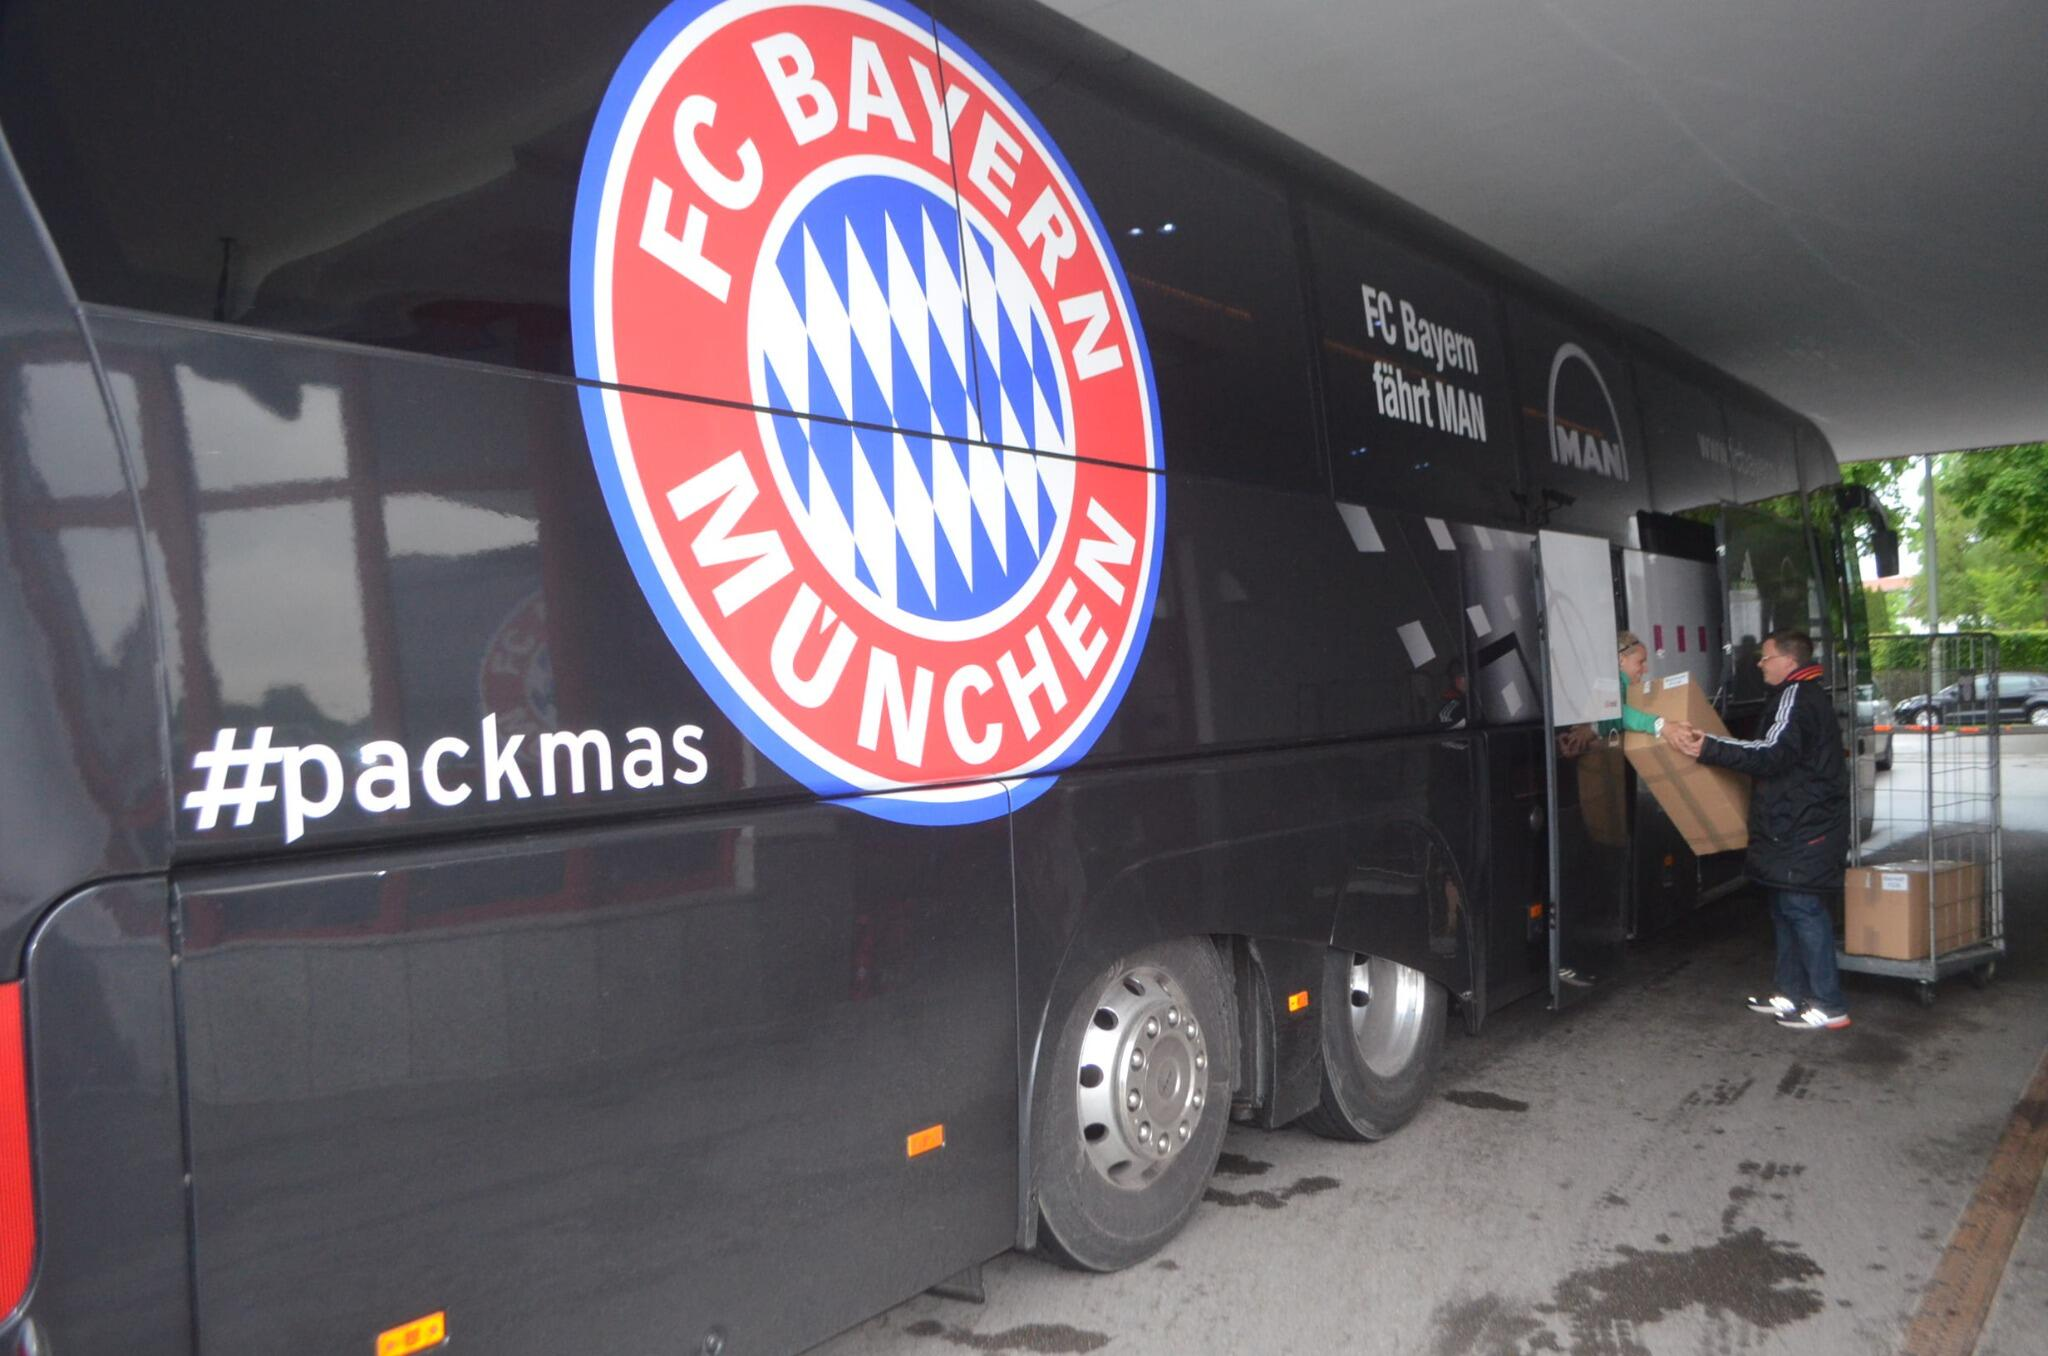 RT @FCBayern: #packmas  Final preparations at the Säbener Straße. #UCLfinal http://t.co/hH1NH5kc32